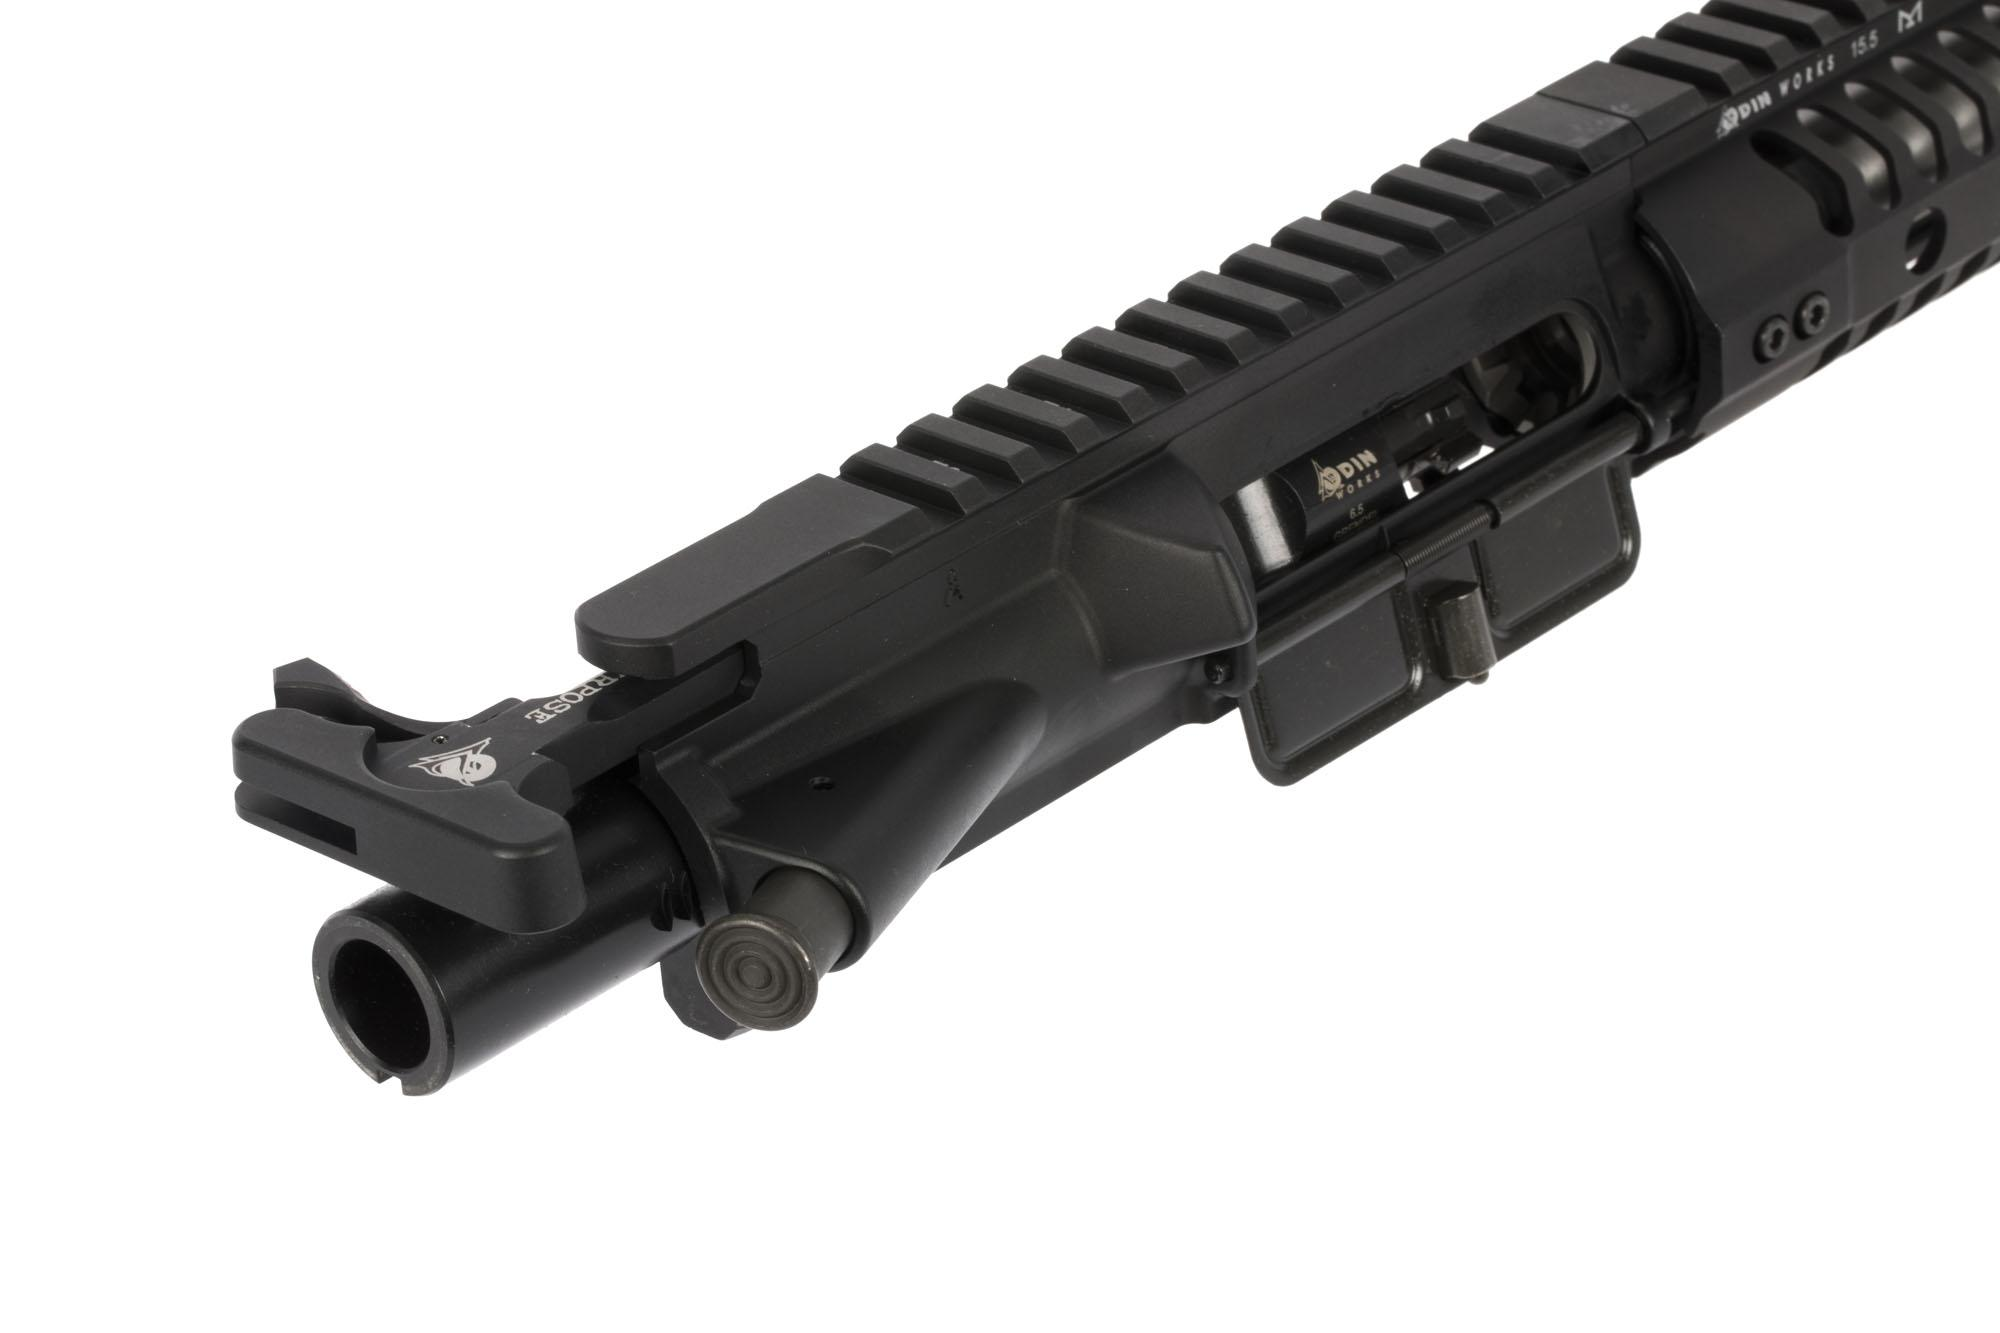 ODIN Works 18in 6.5 Grendel come with a black Nitride coated bolt carrier group